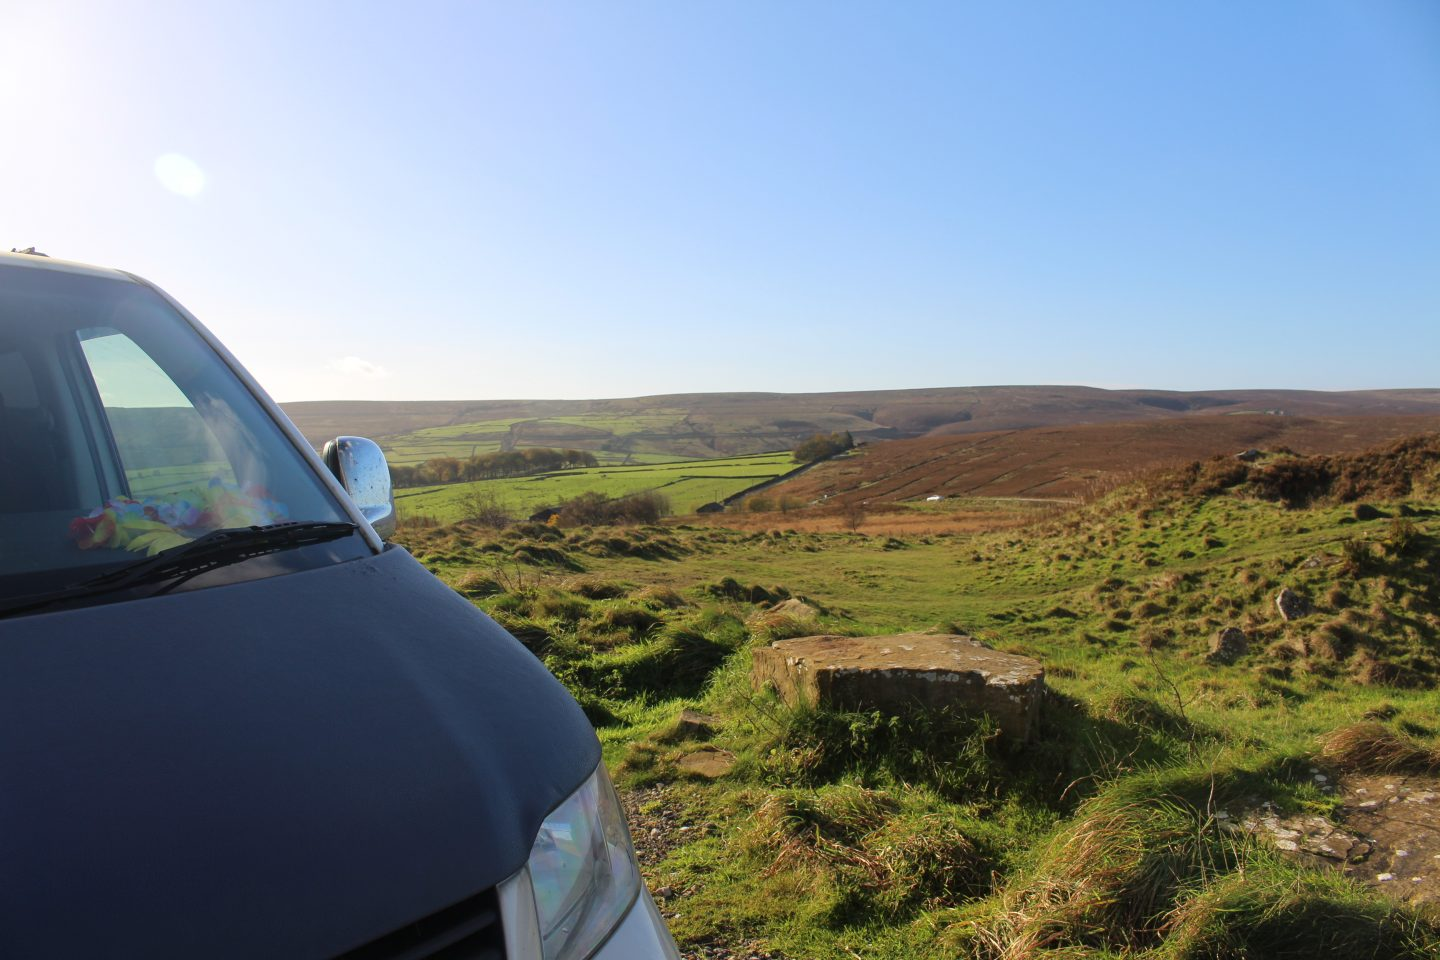 Camping at Penistone Hill Country Park Car Park